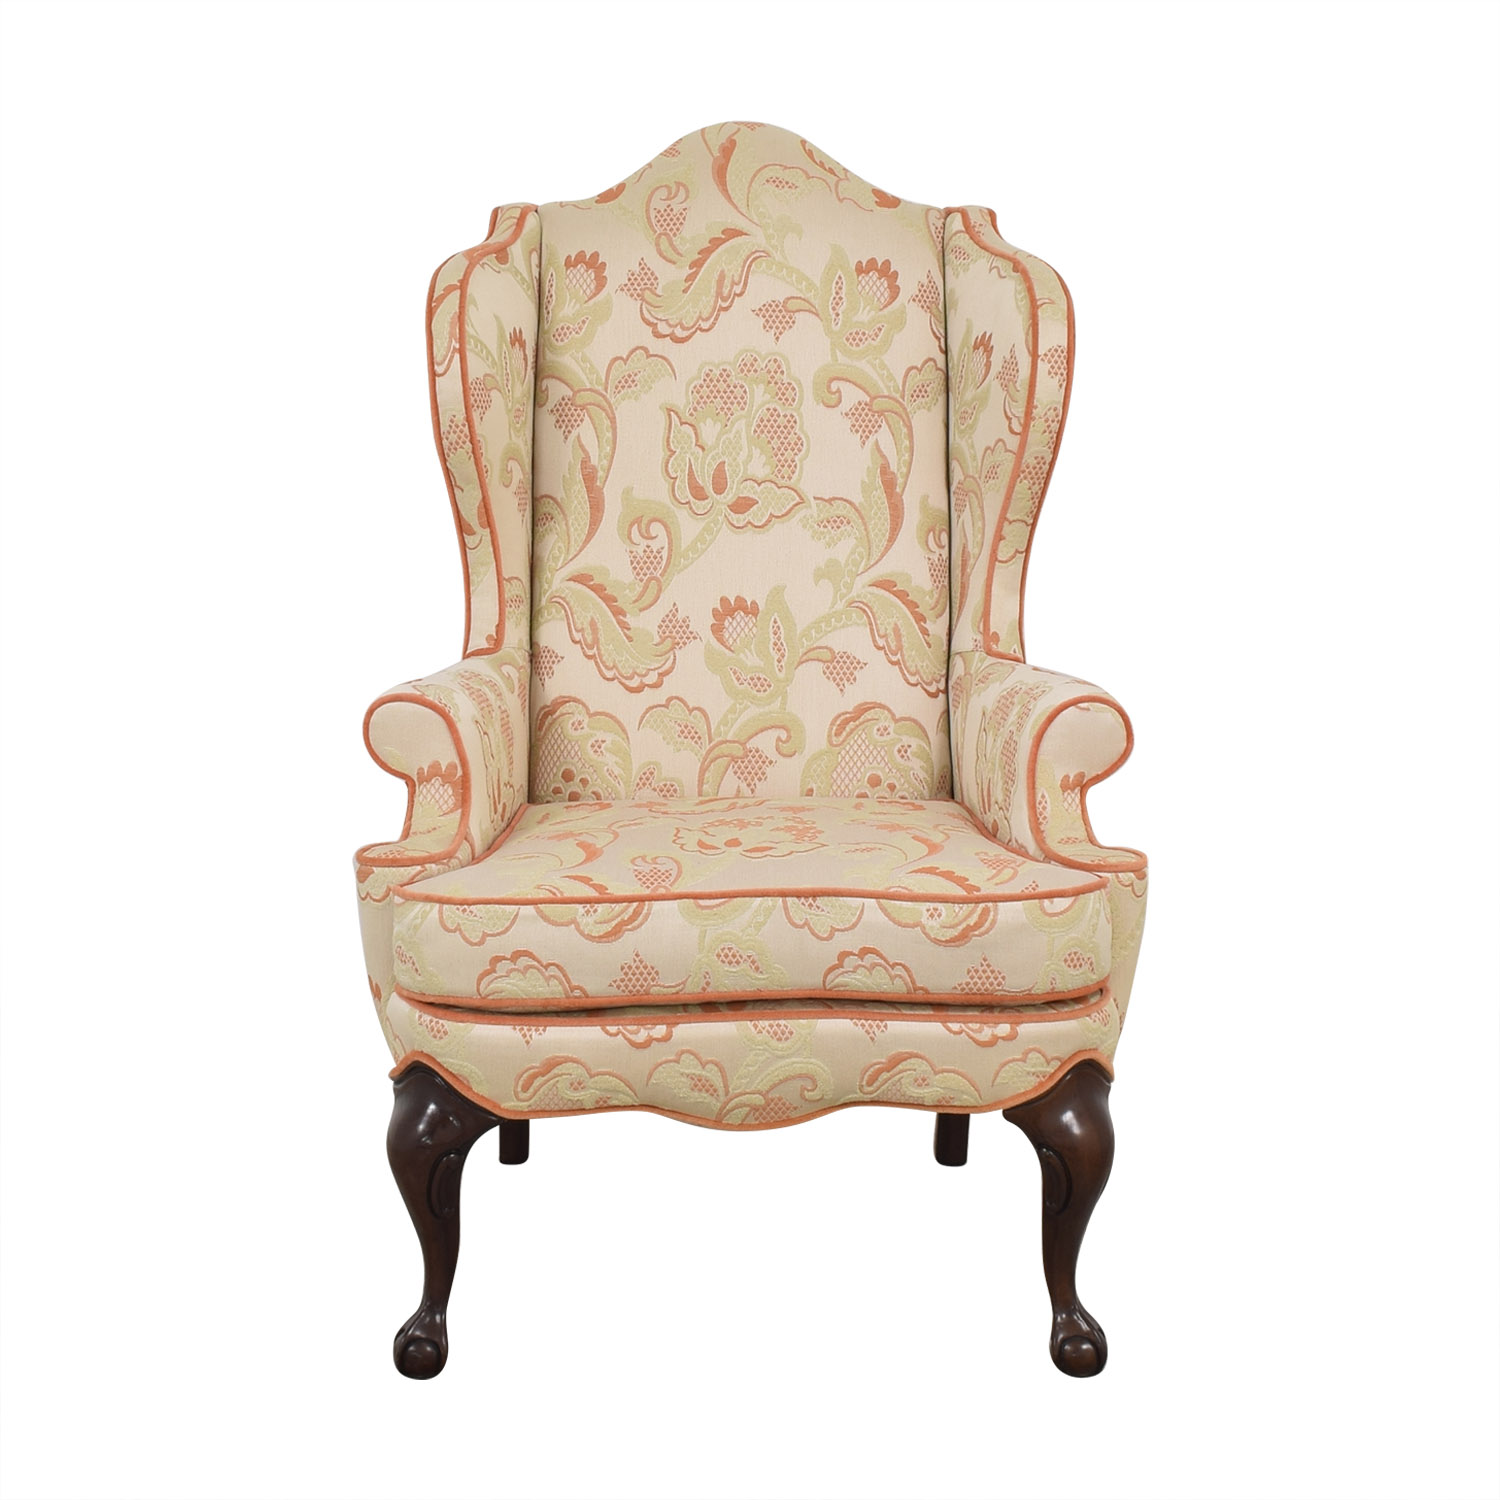 Macy's Upholstered Wingback Chair / Chairs